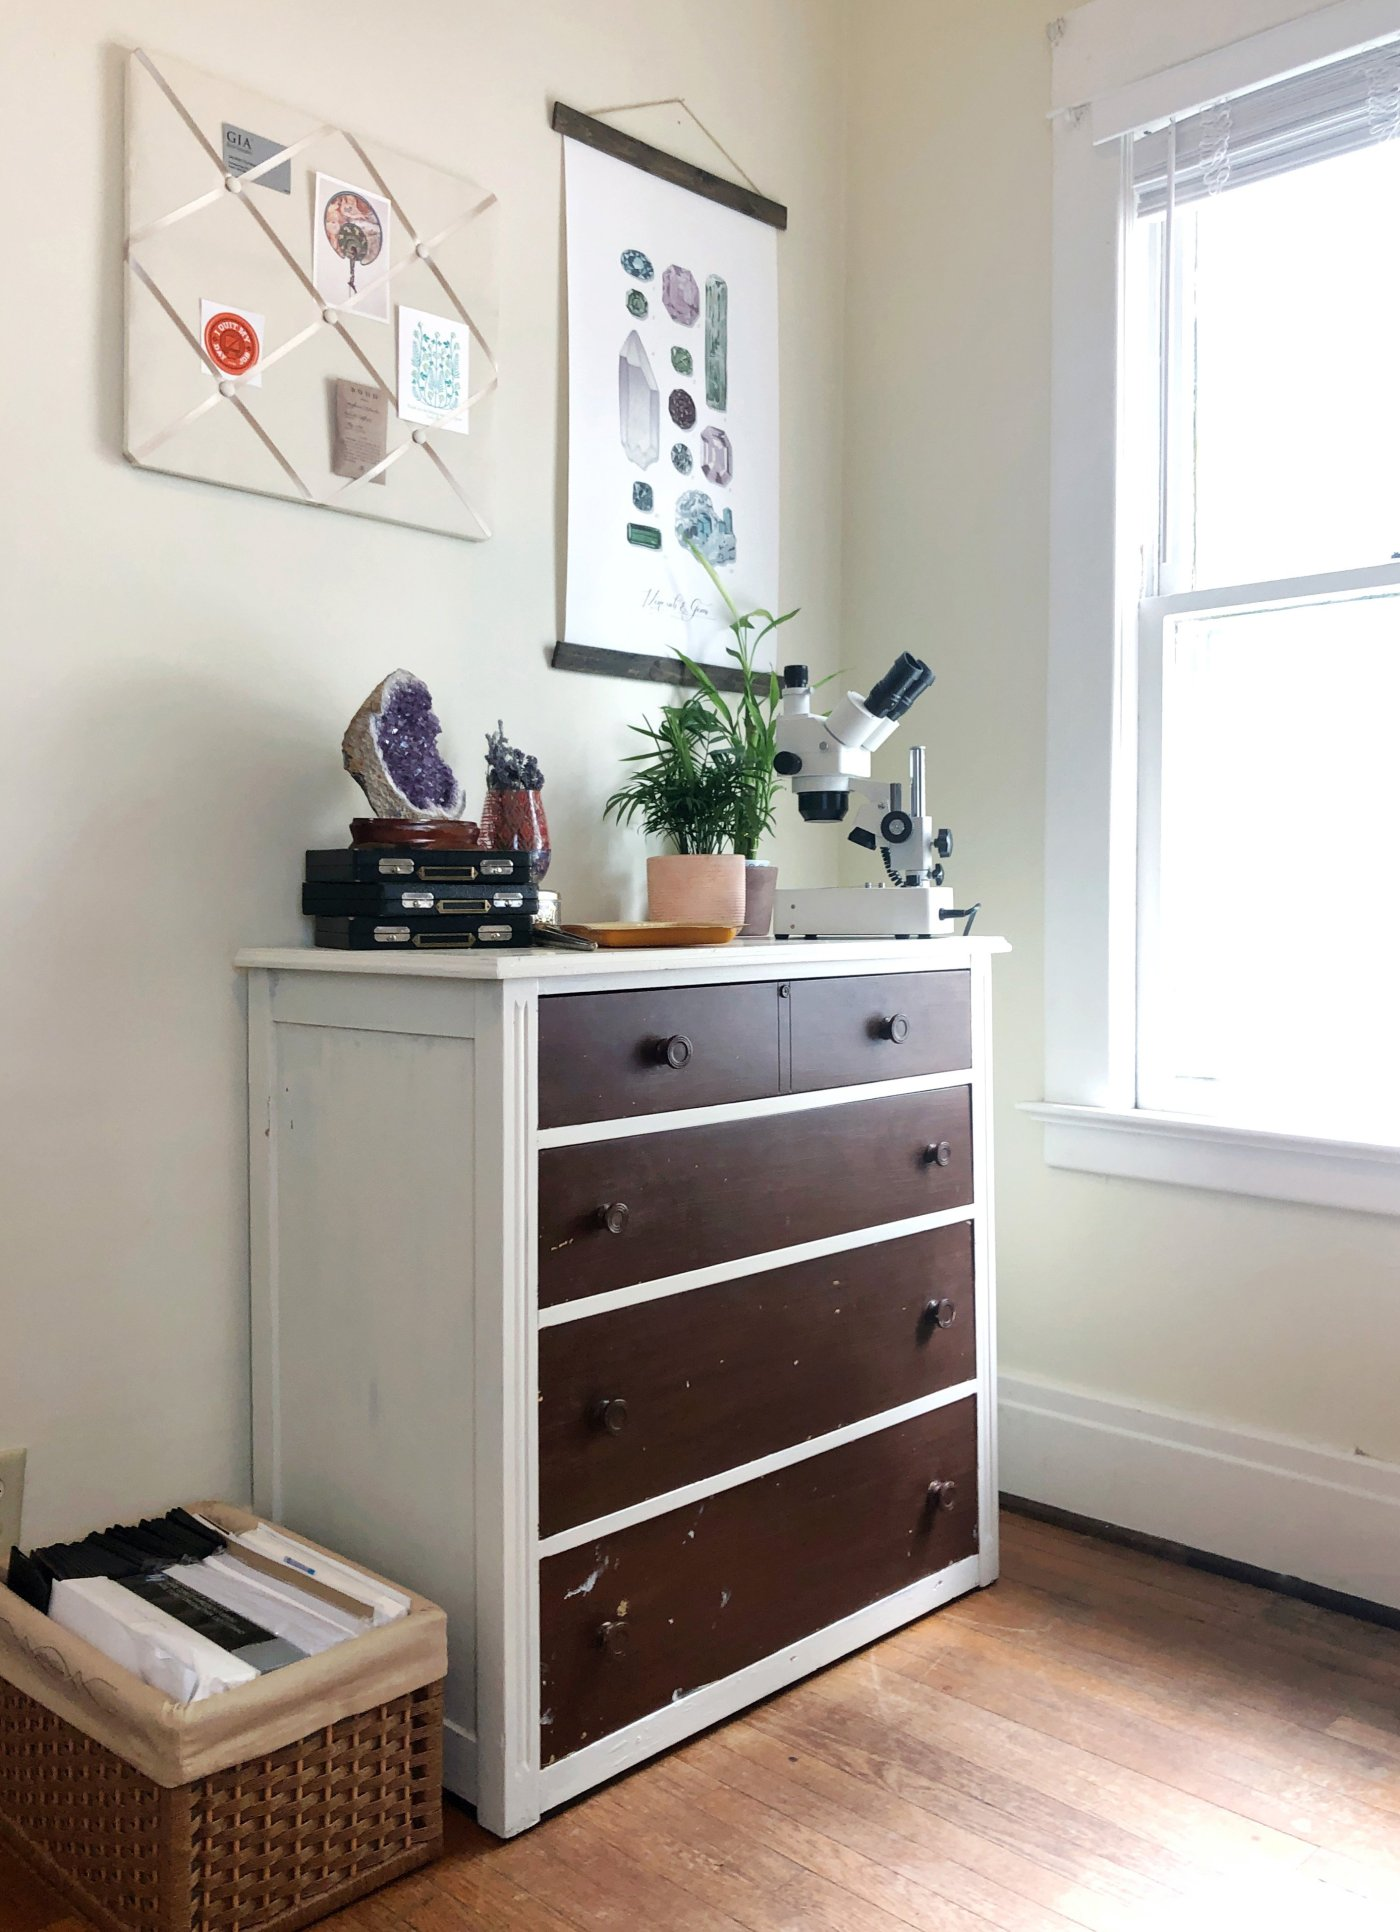 DIY Dresser Makeover - Painting an old dresser